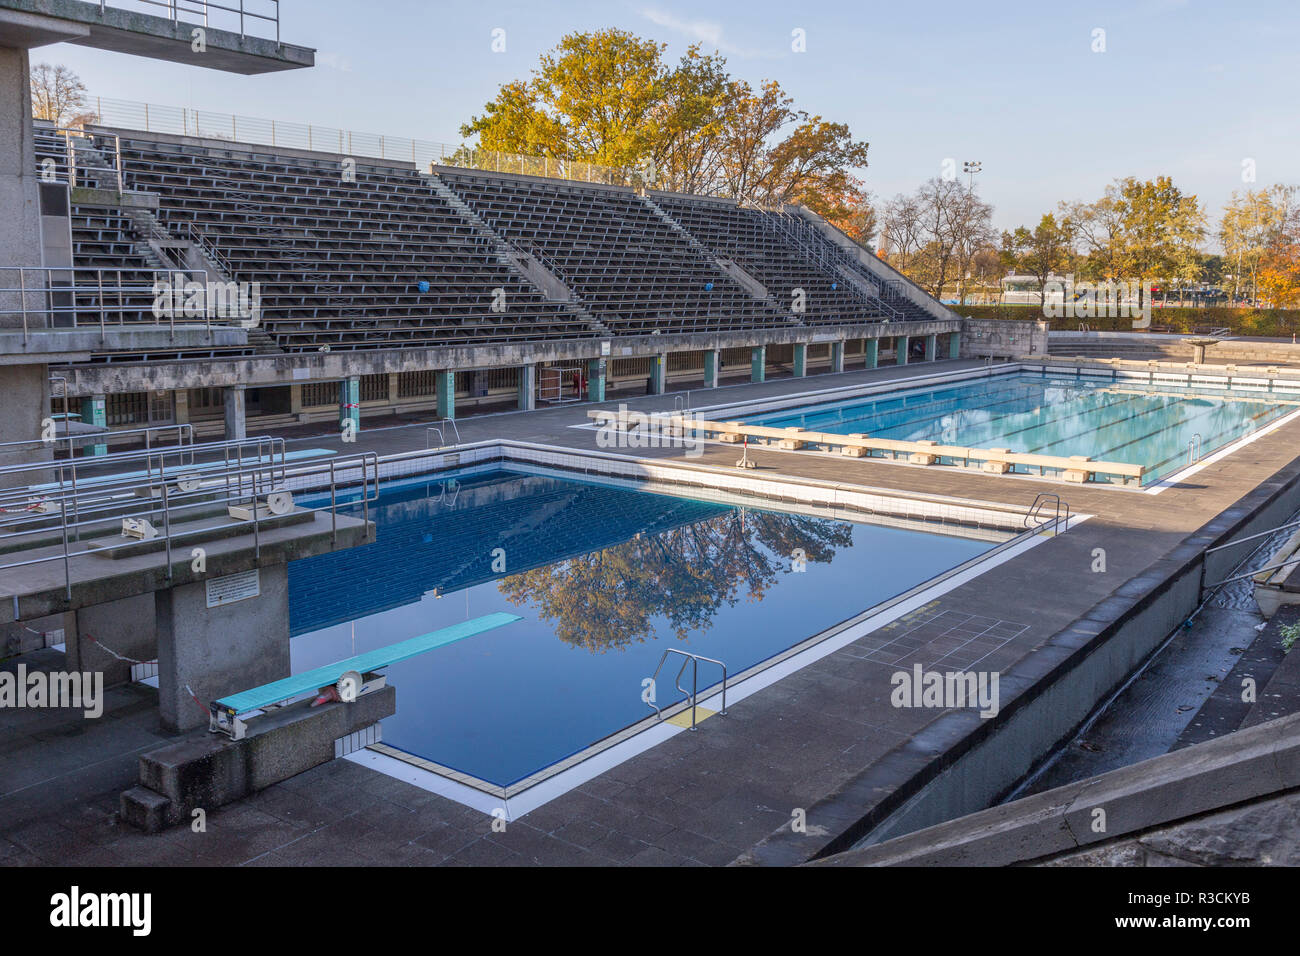 two swimming pools - Stock Image